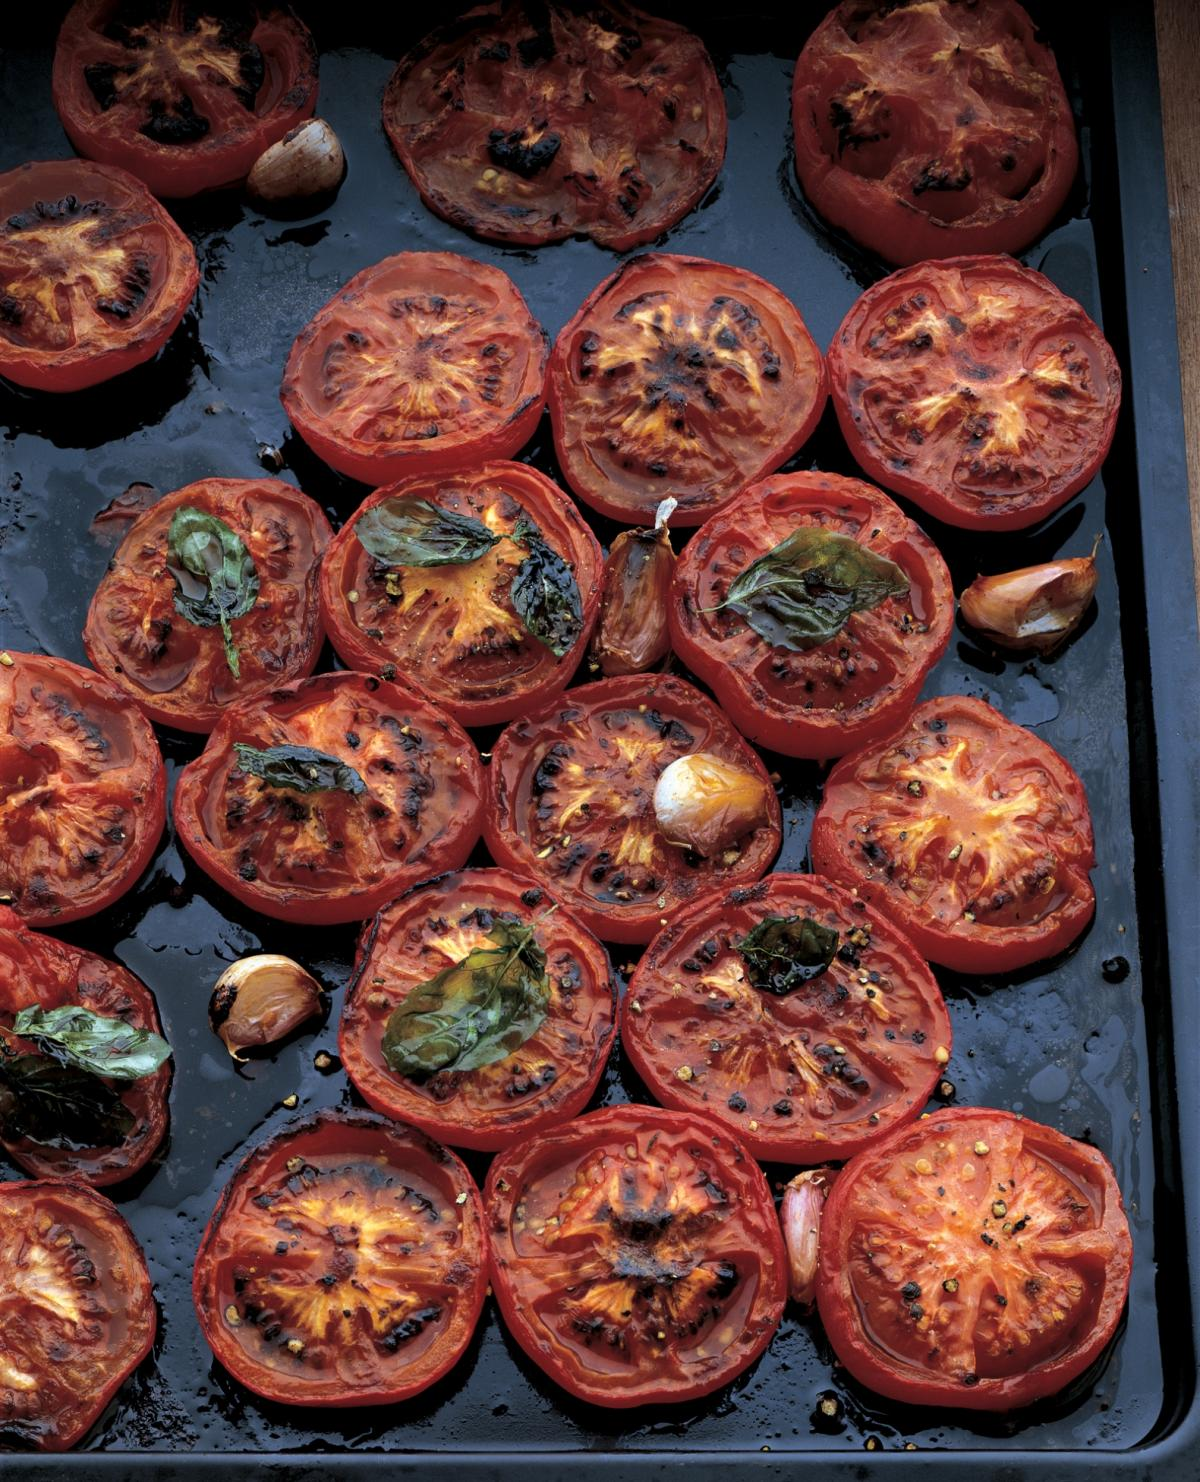 A picture of Delia's Tomatoes recipes